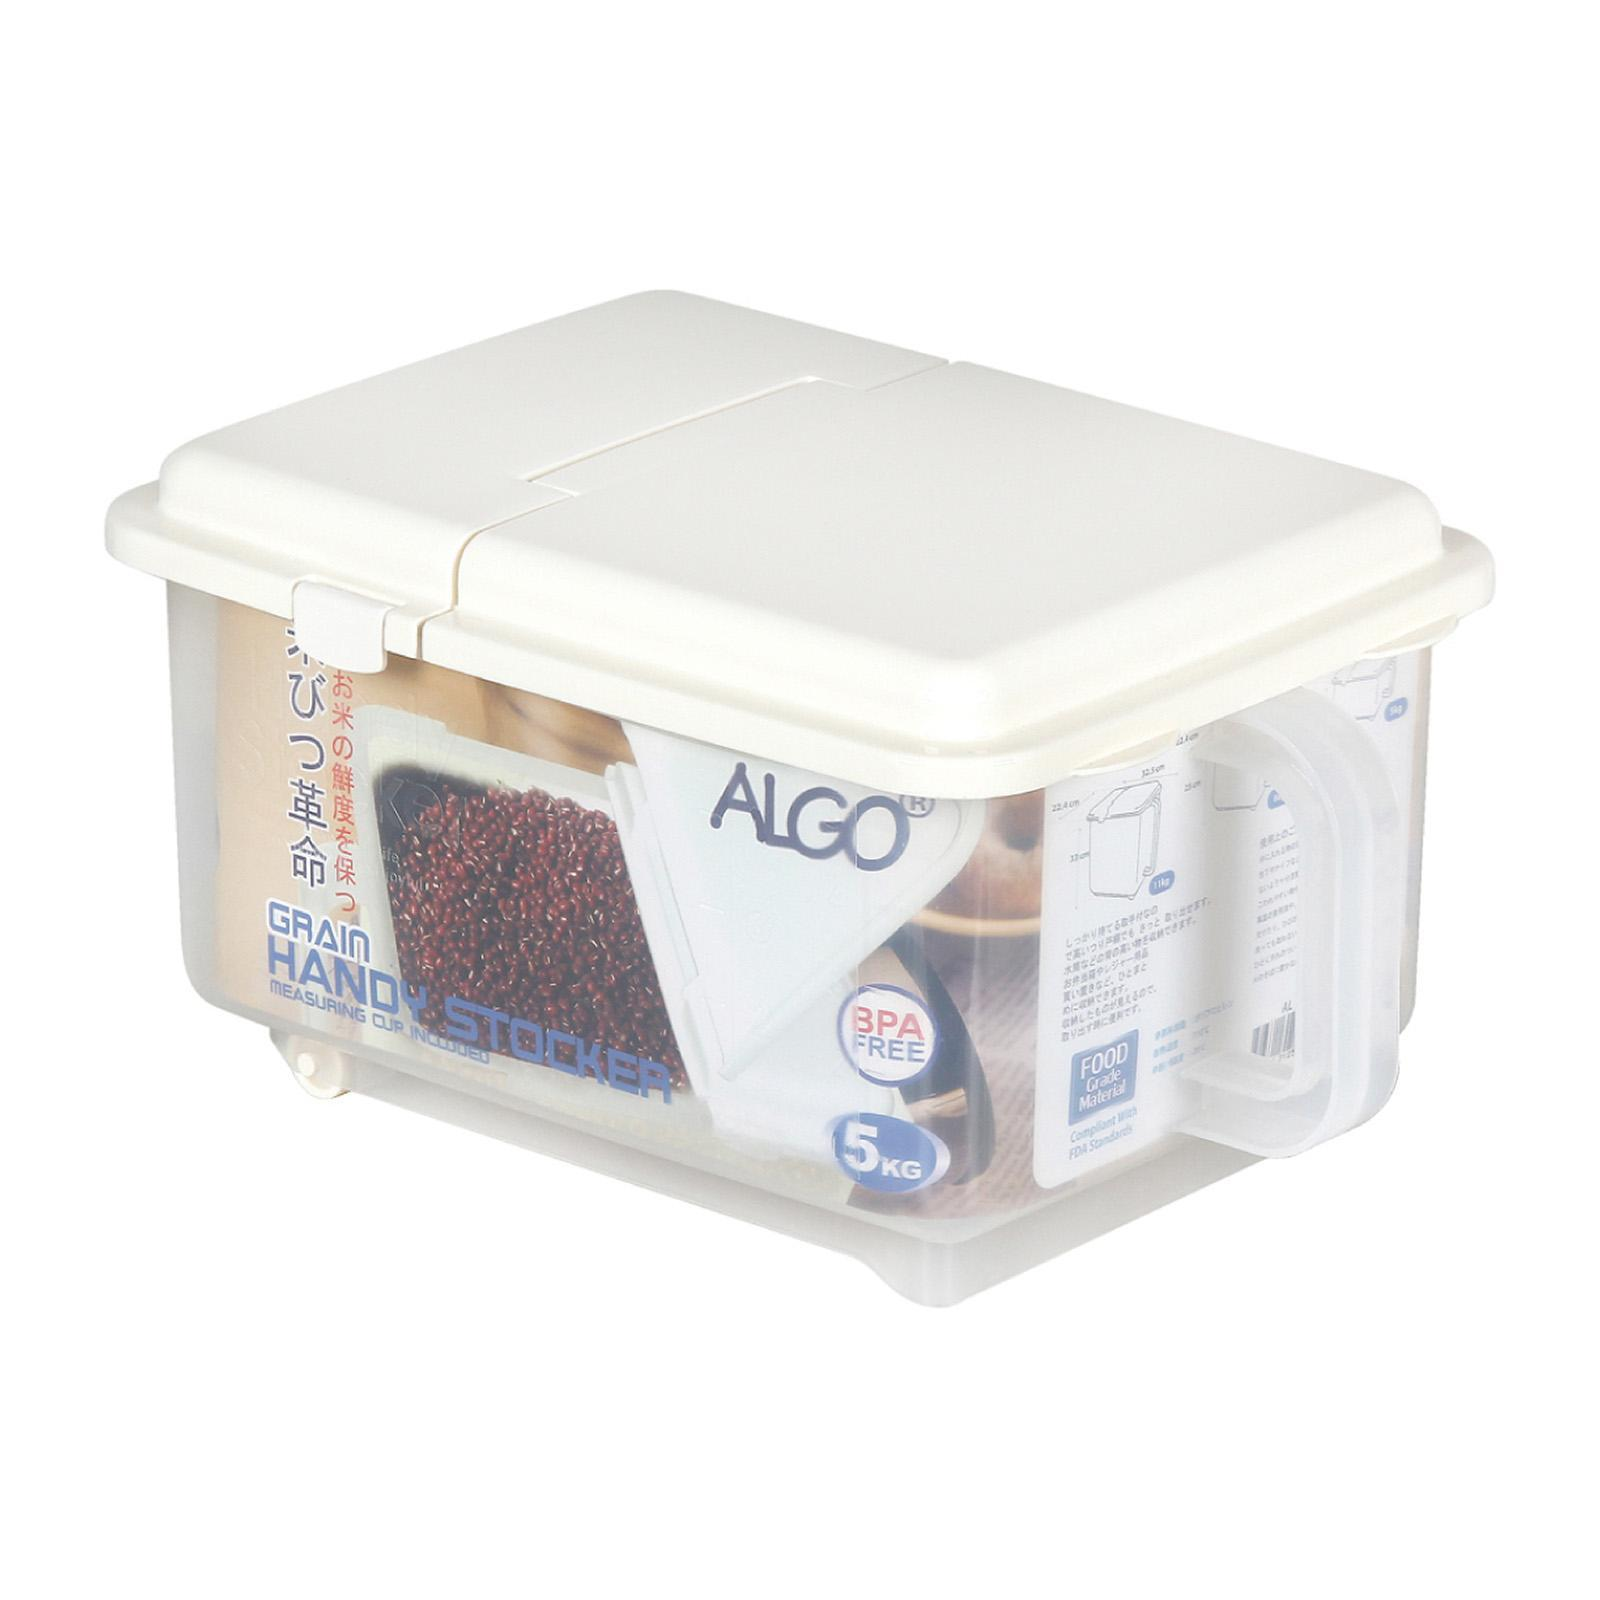 ALGO Rice Stocker S